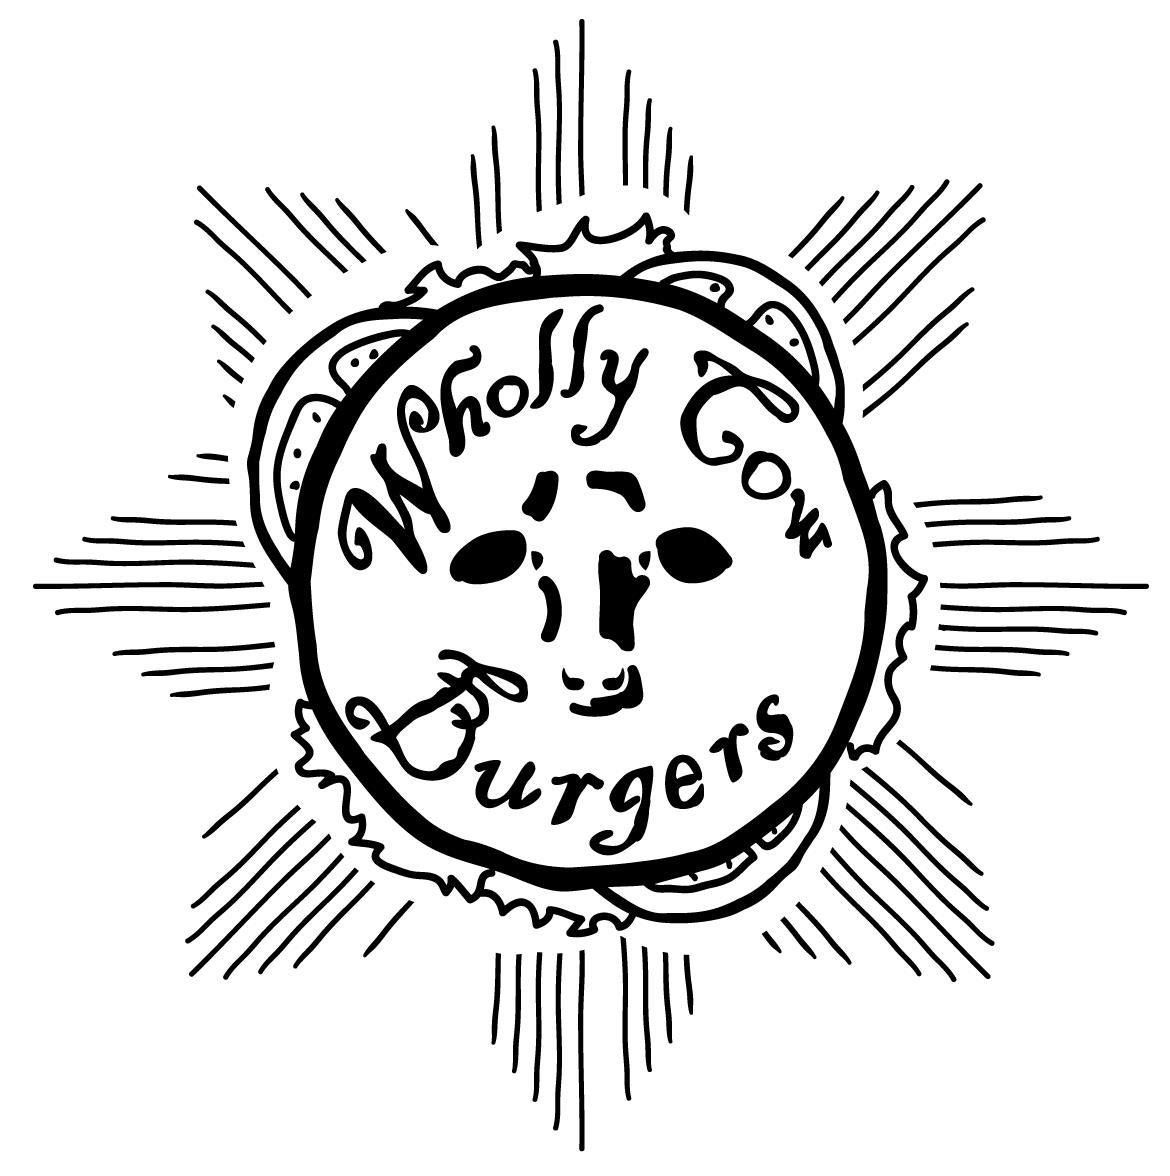 Wholly Cow Burgers logo